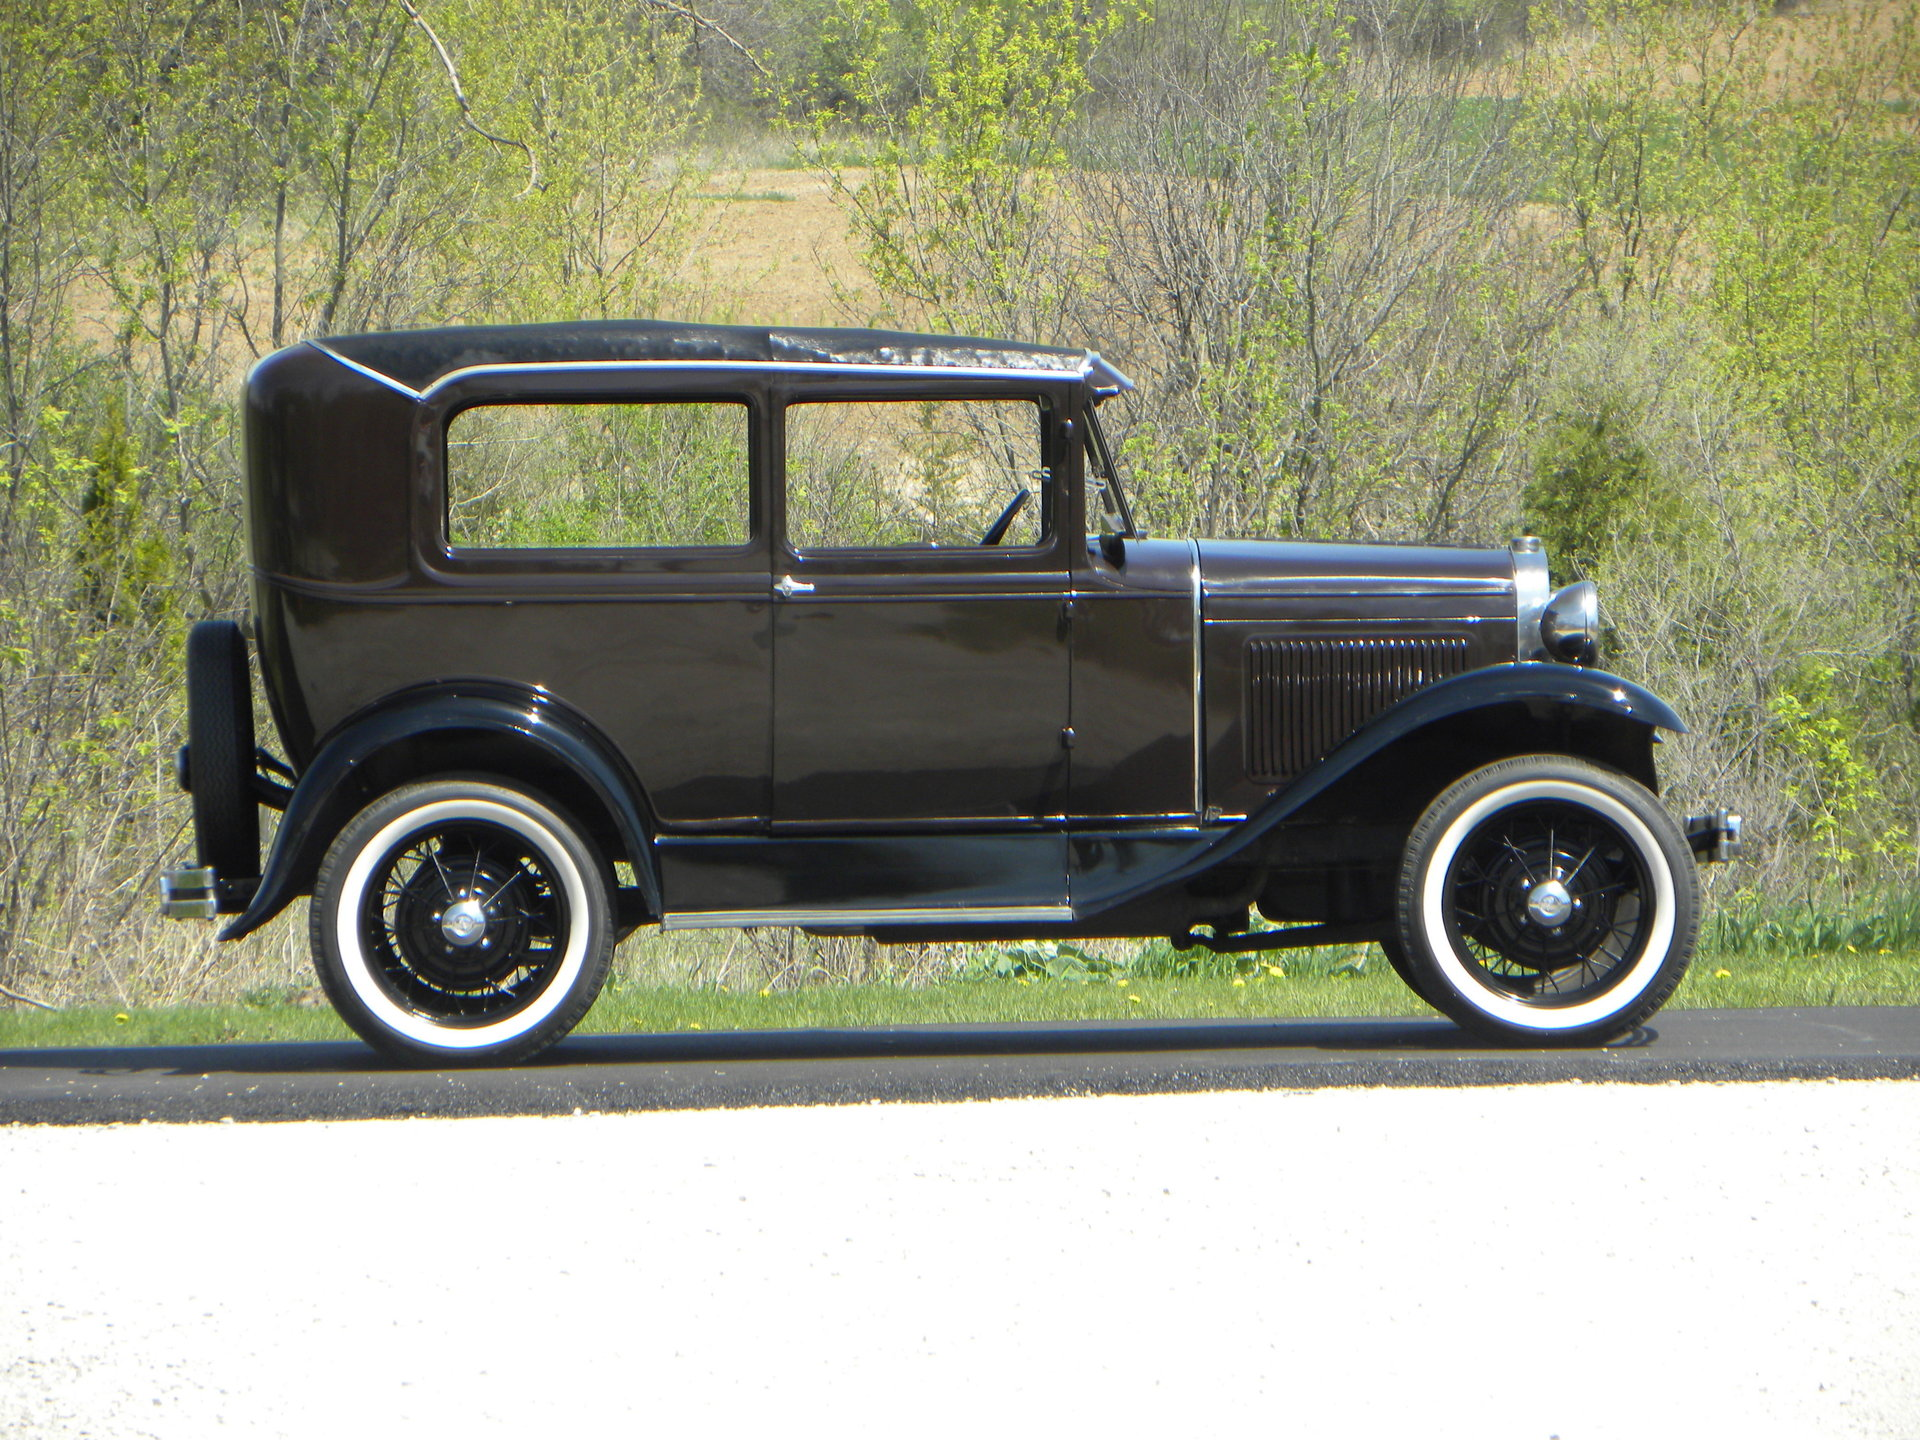 370155facfa7b8 hd 1930 ford model a tudor sedan